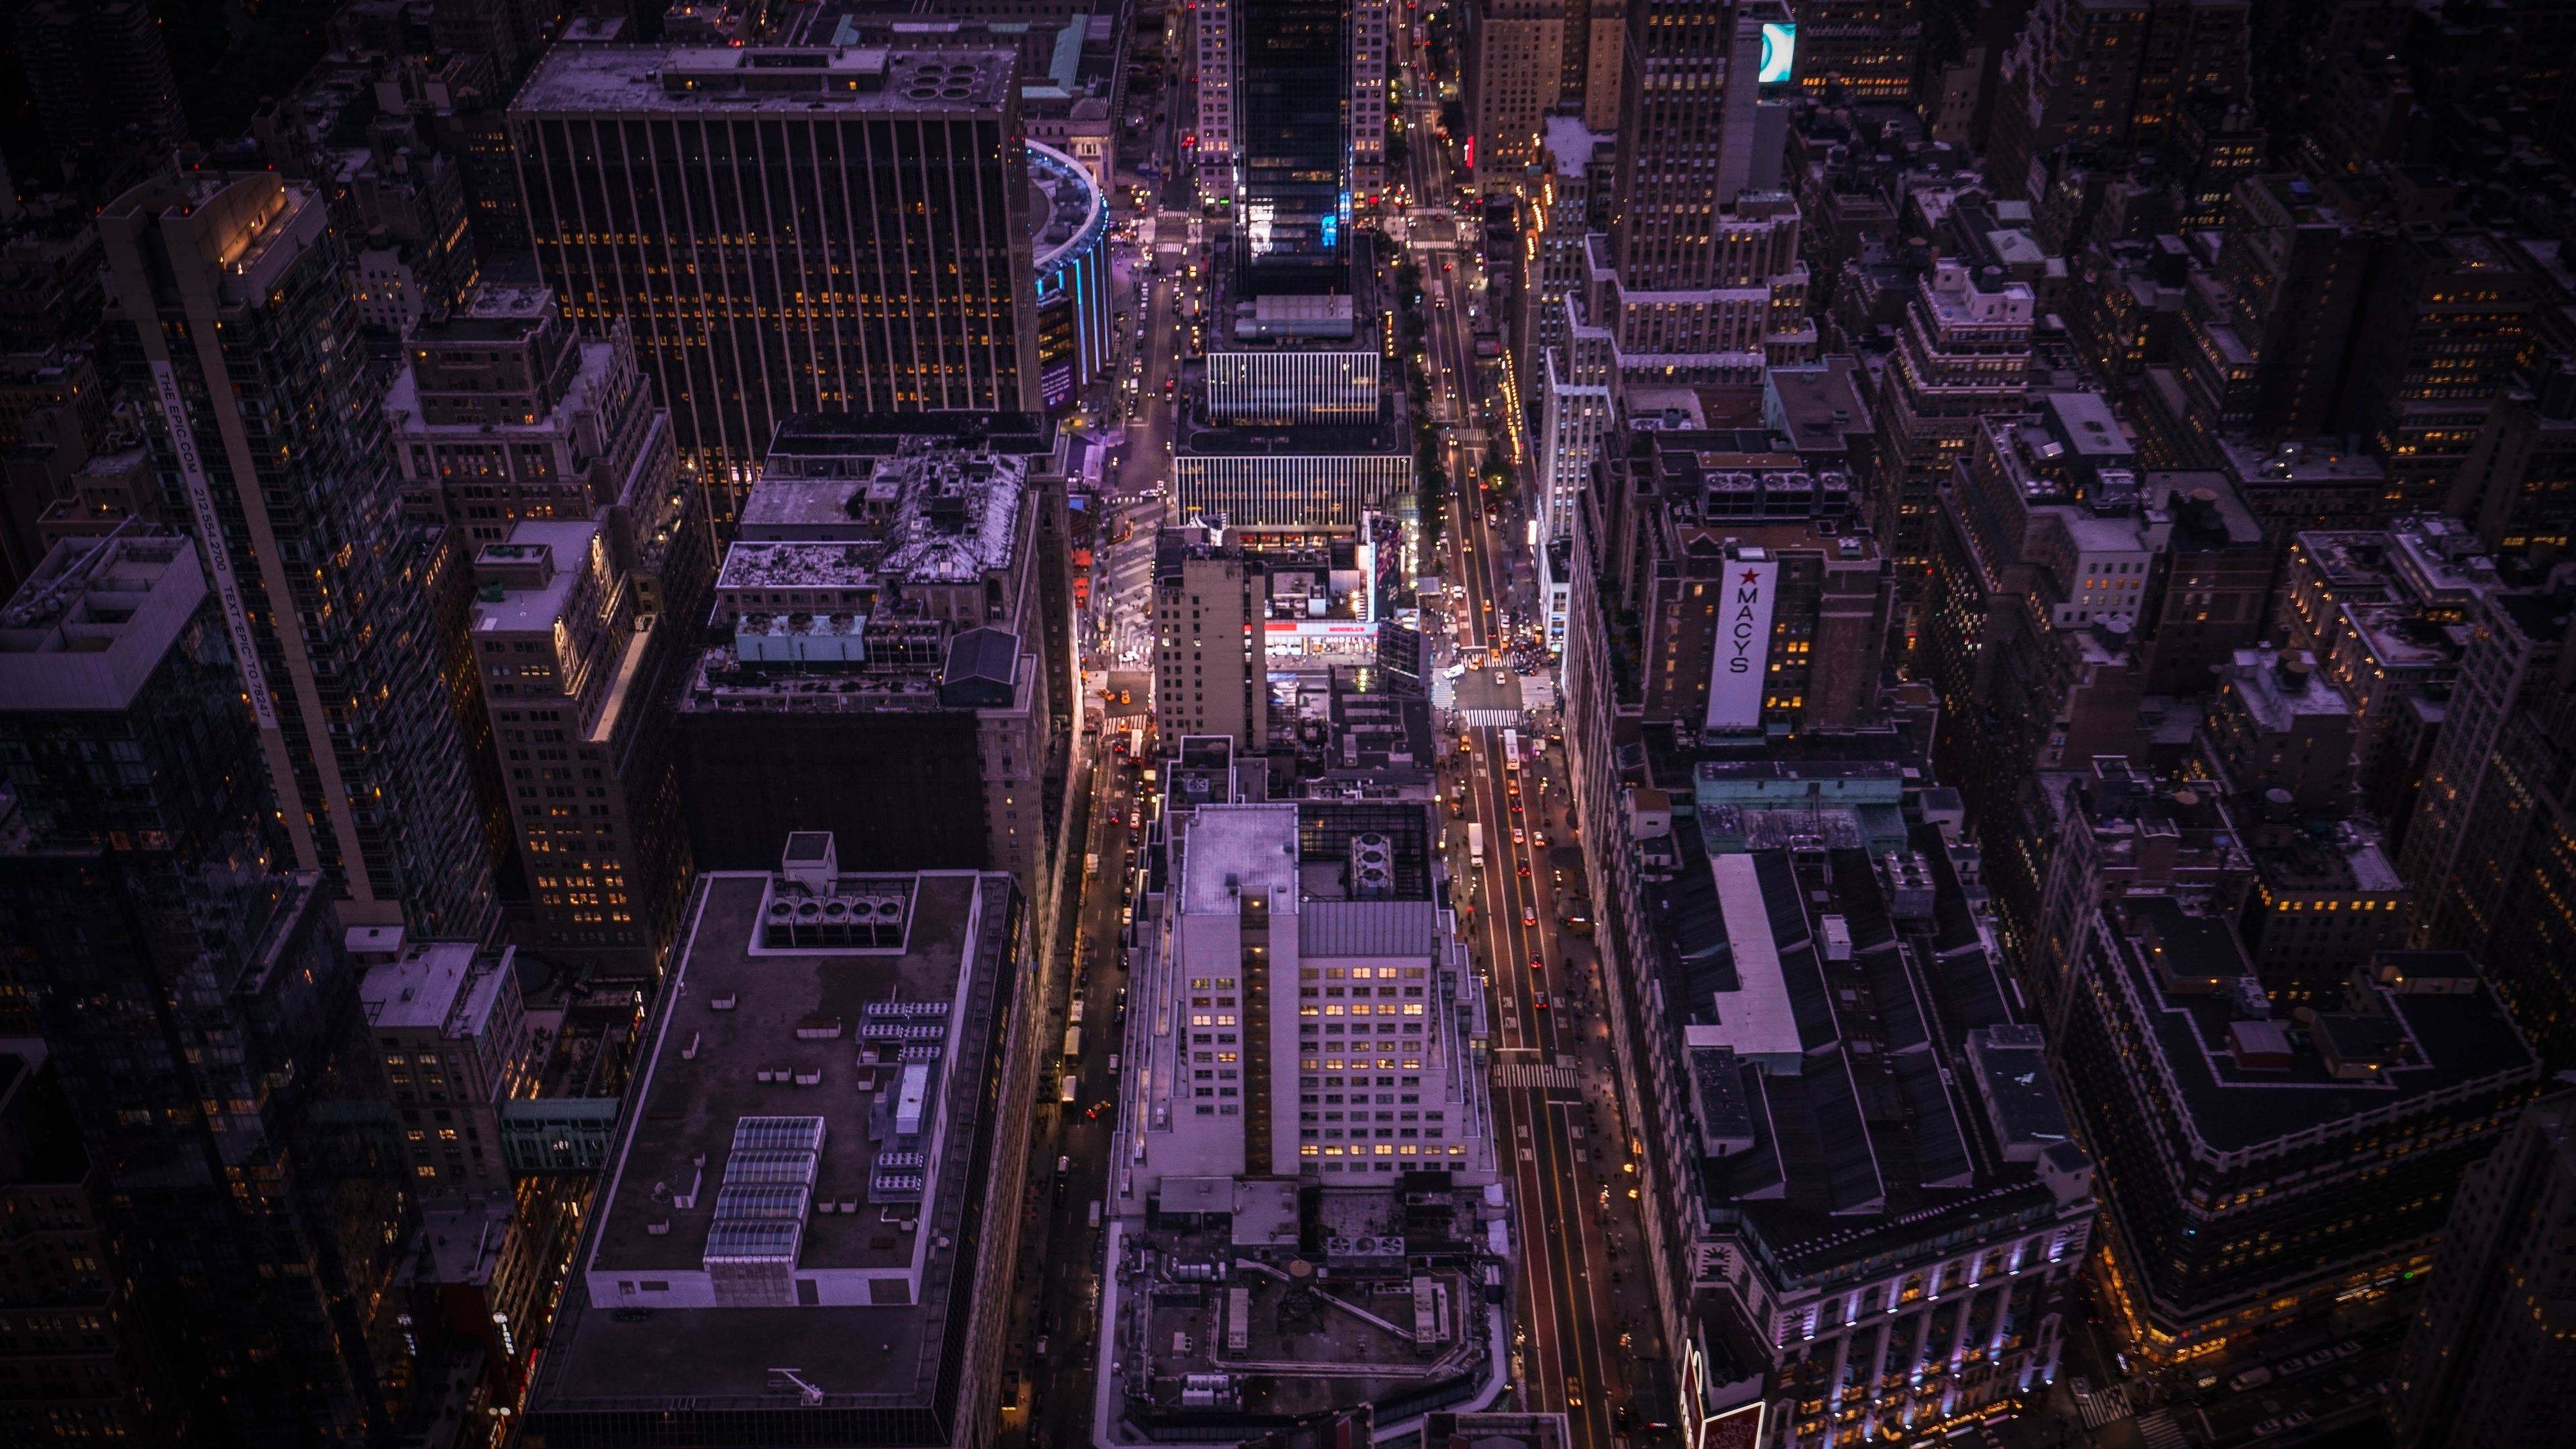 empire state building top view 8k 1540756879 - Empire State Building Top View 8k - world wallpapers, photography wallpapers, new york wallpapers, hd-wallpapers, empire state building wallpapers, 8k wallpapers, 4k-wallpapers